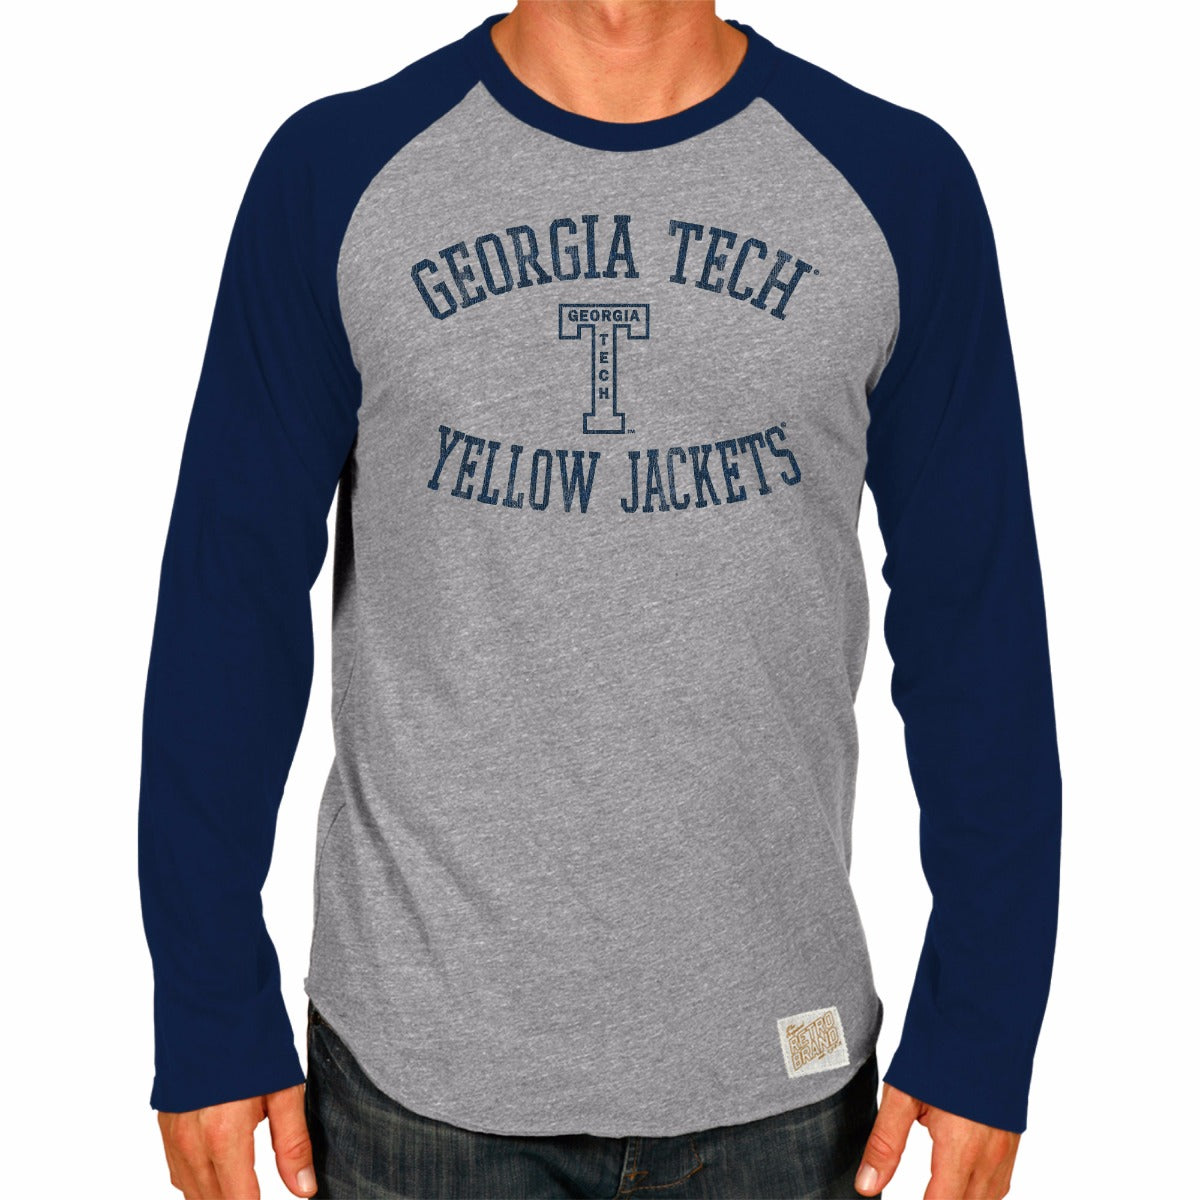 Georgia Tech Yellow Jackets Tri-Blend Unisex Contrast Raglan